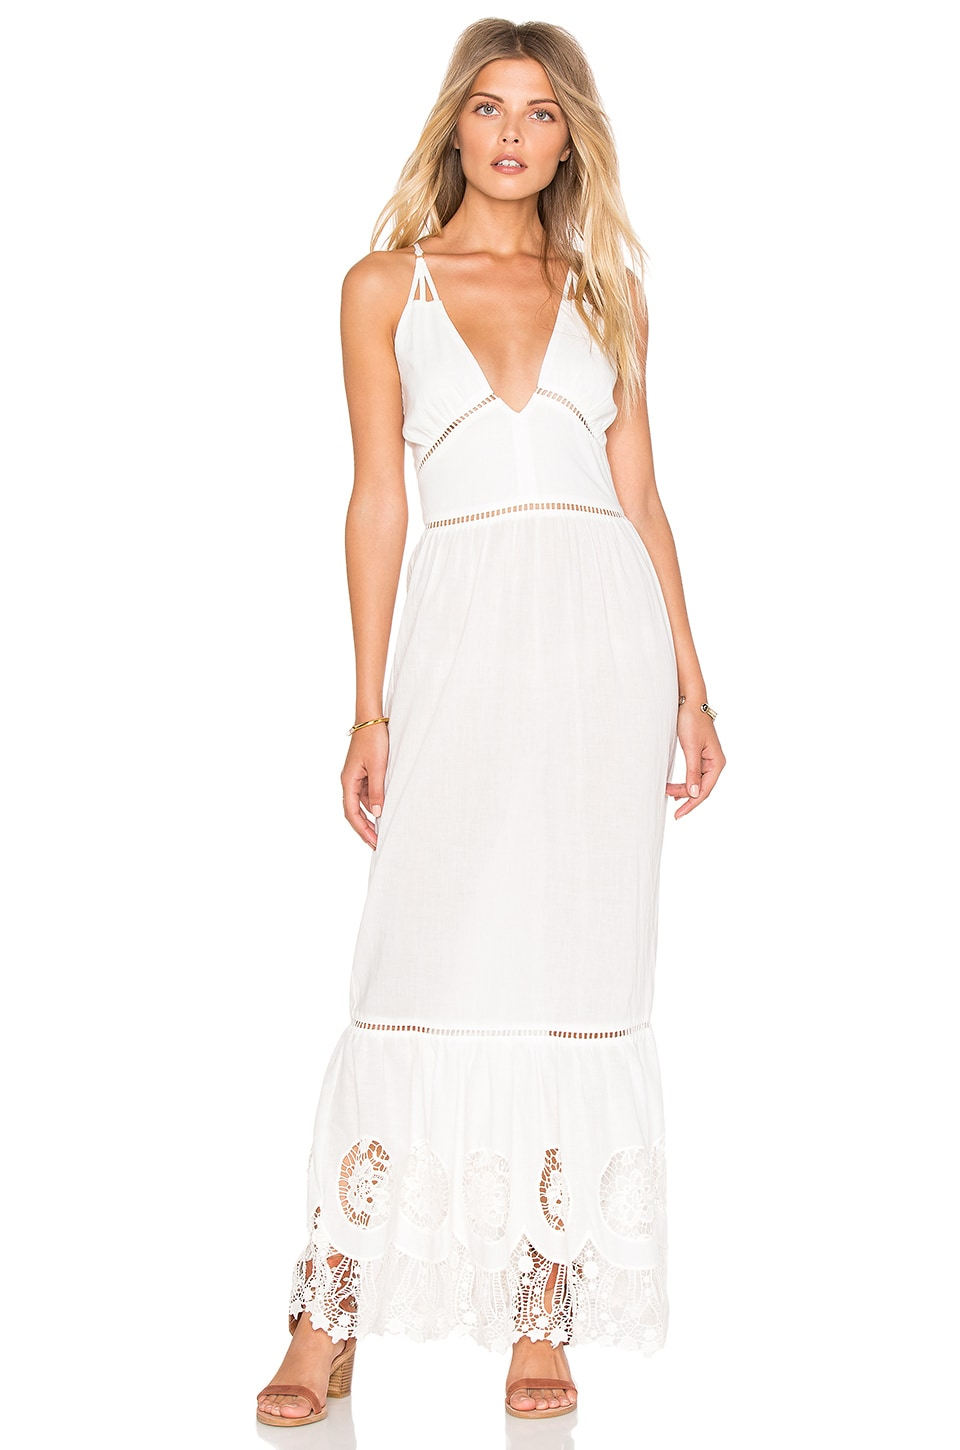 buy Splendor Falls Dress by MINKPINK dresses online shopping